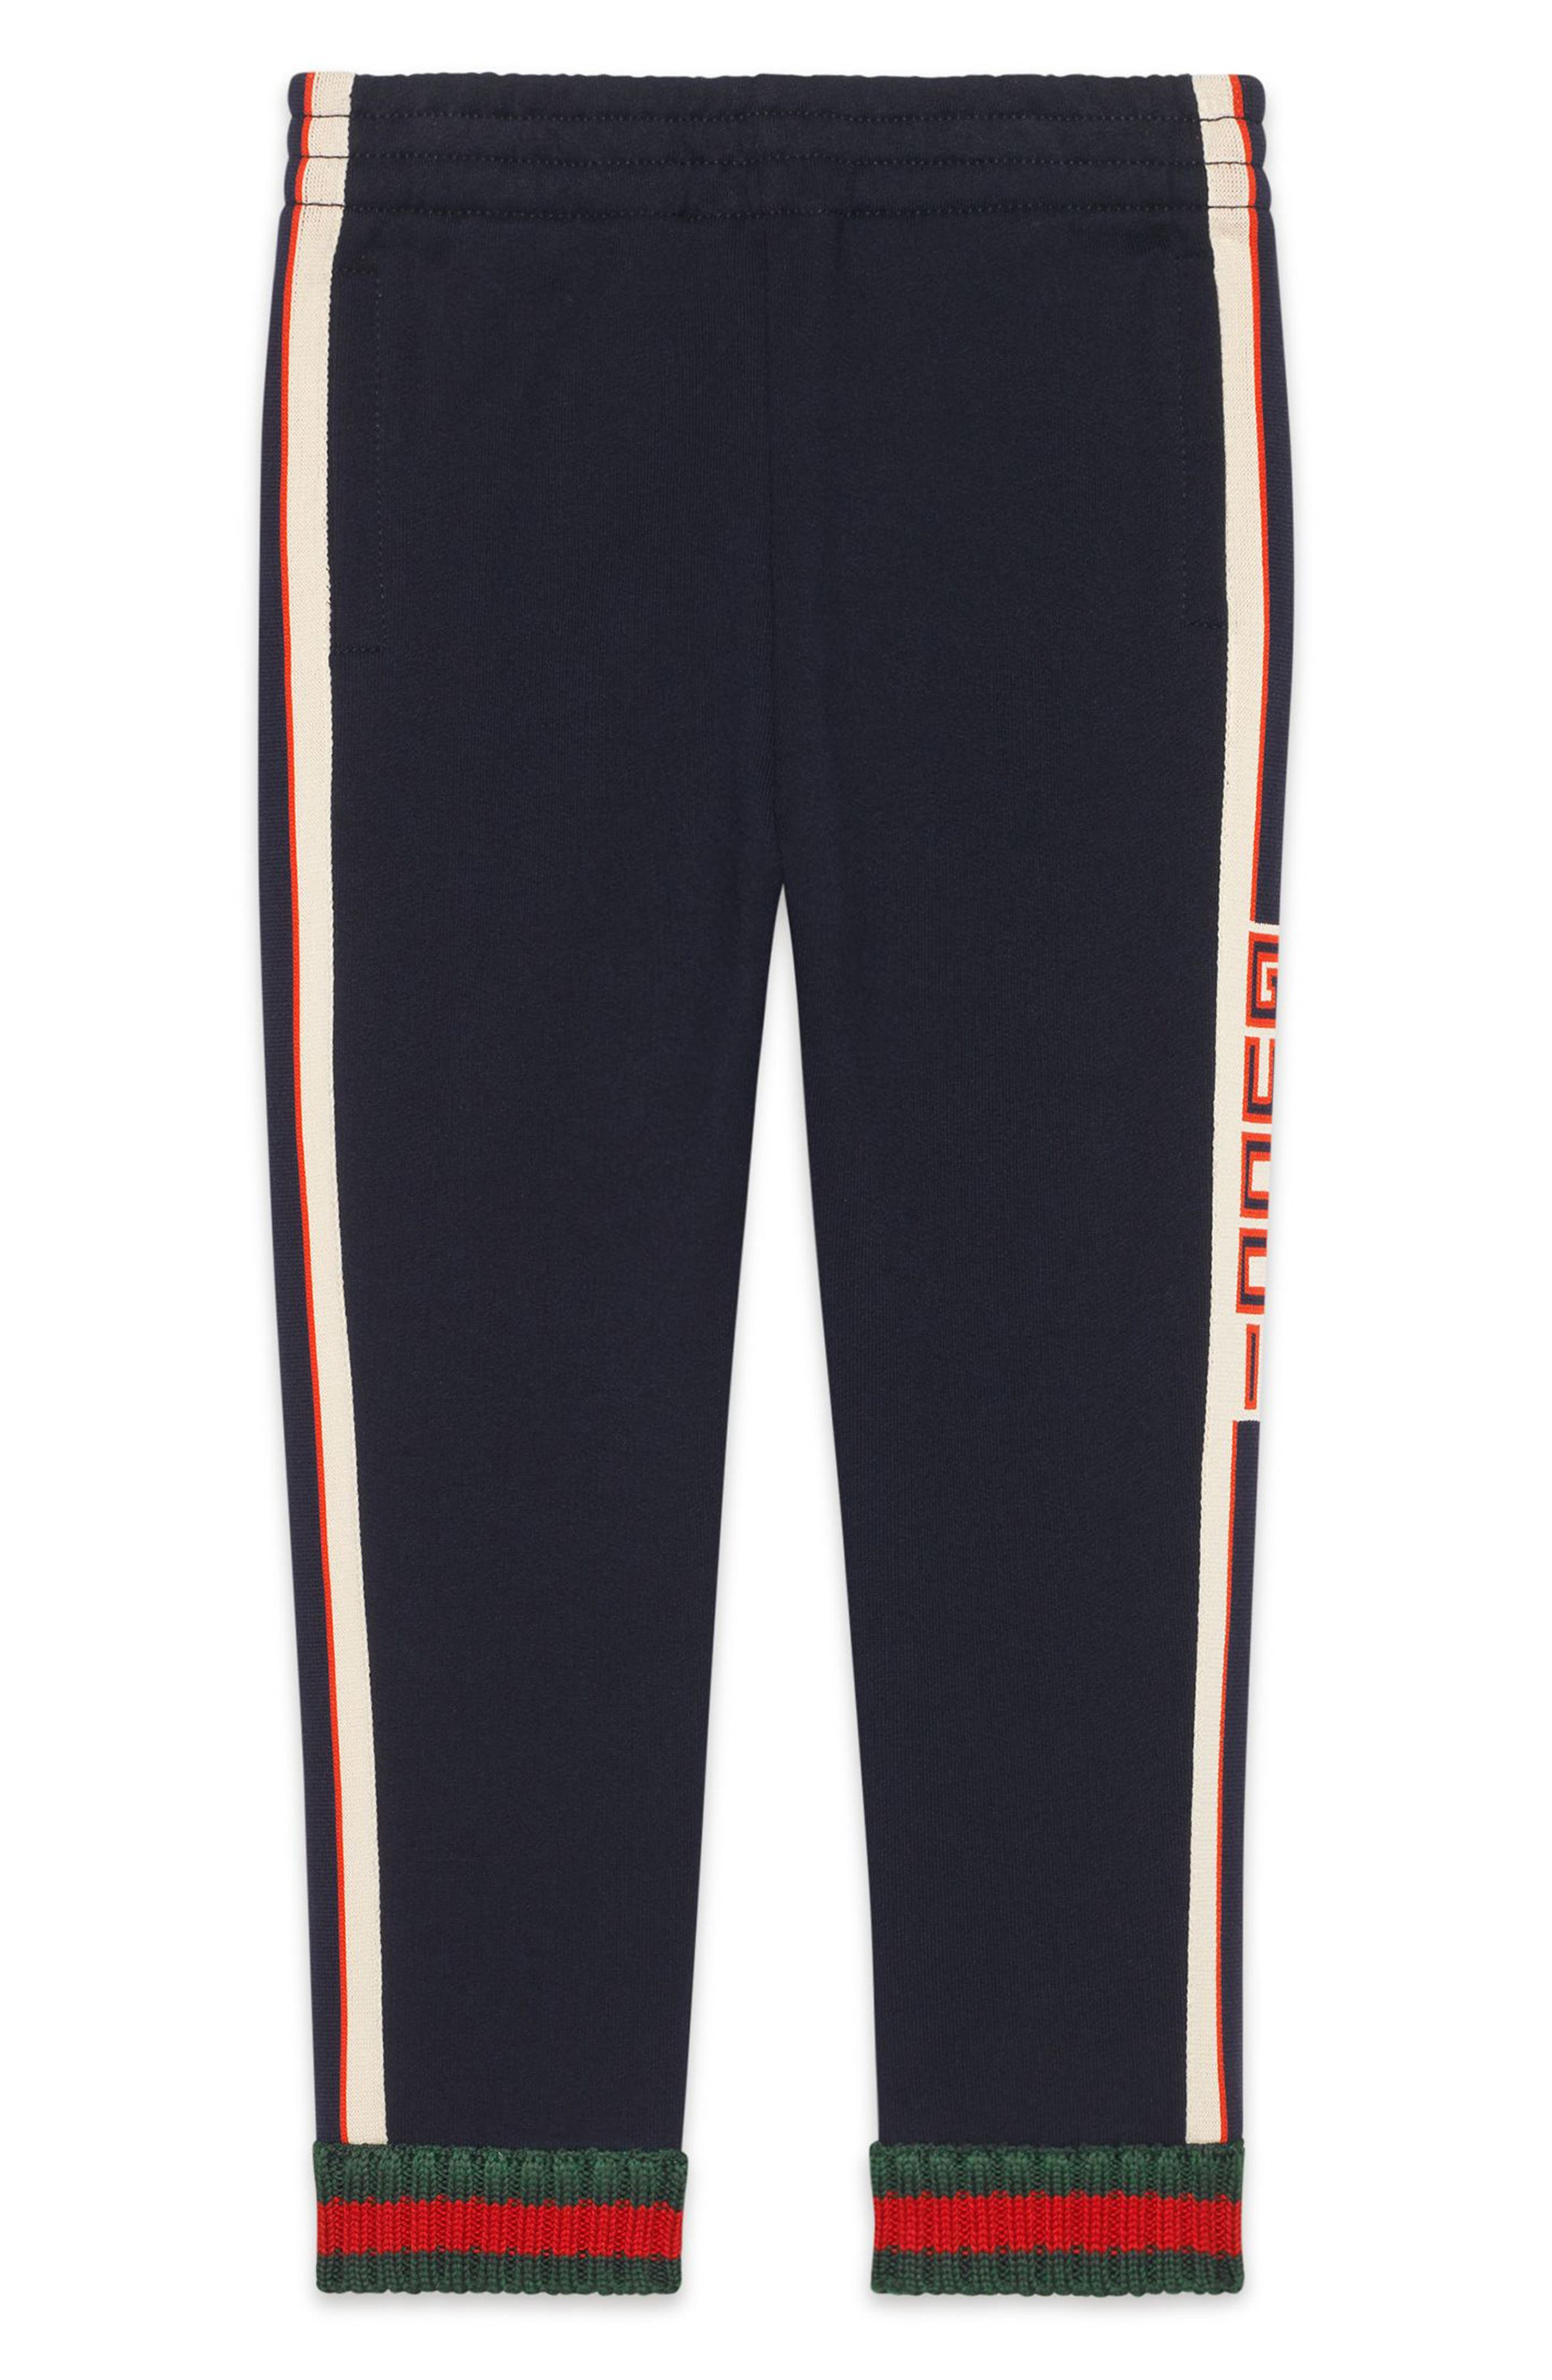 GUCCI, Logo Stripe Jogging Pants, Main thumbnail 1, color, PERIWINKLE/ RED